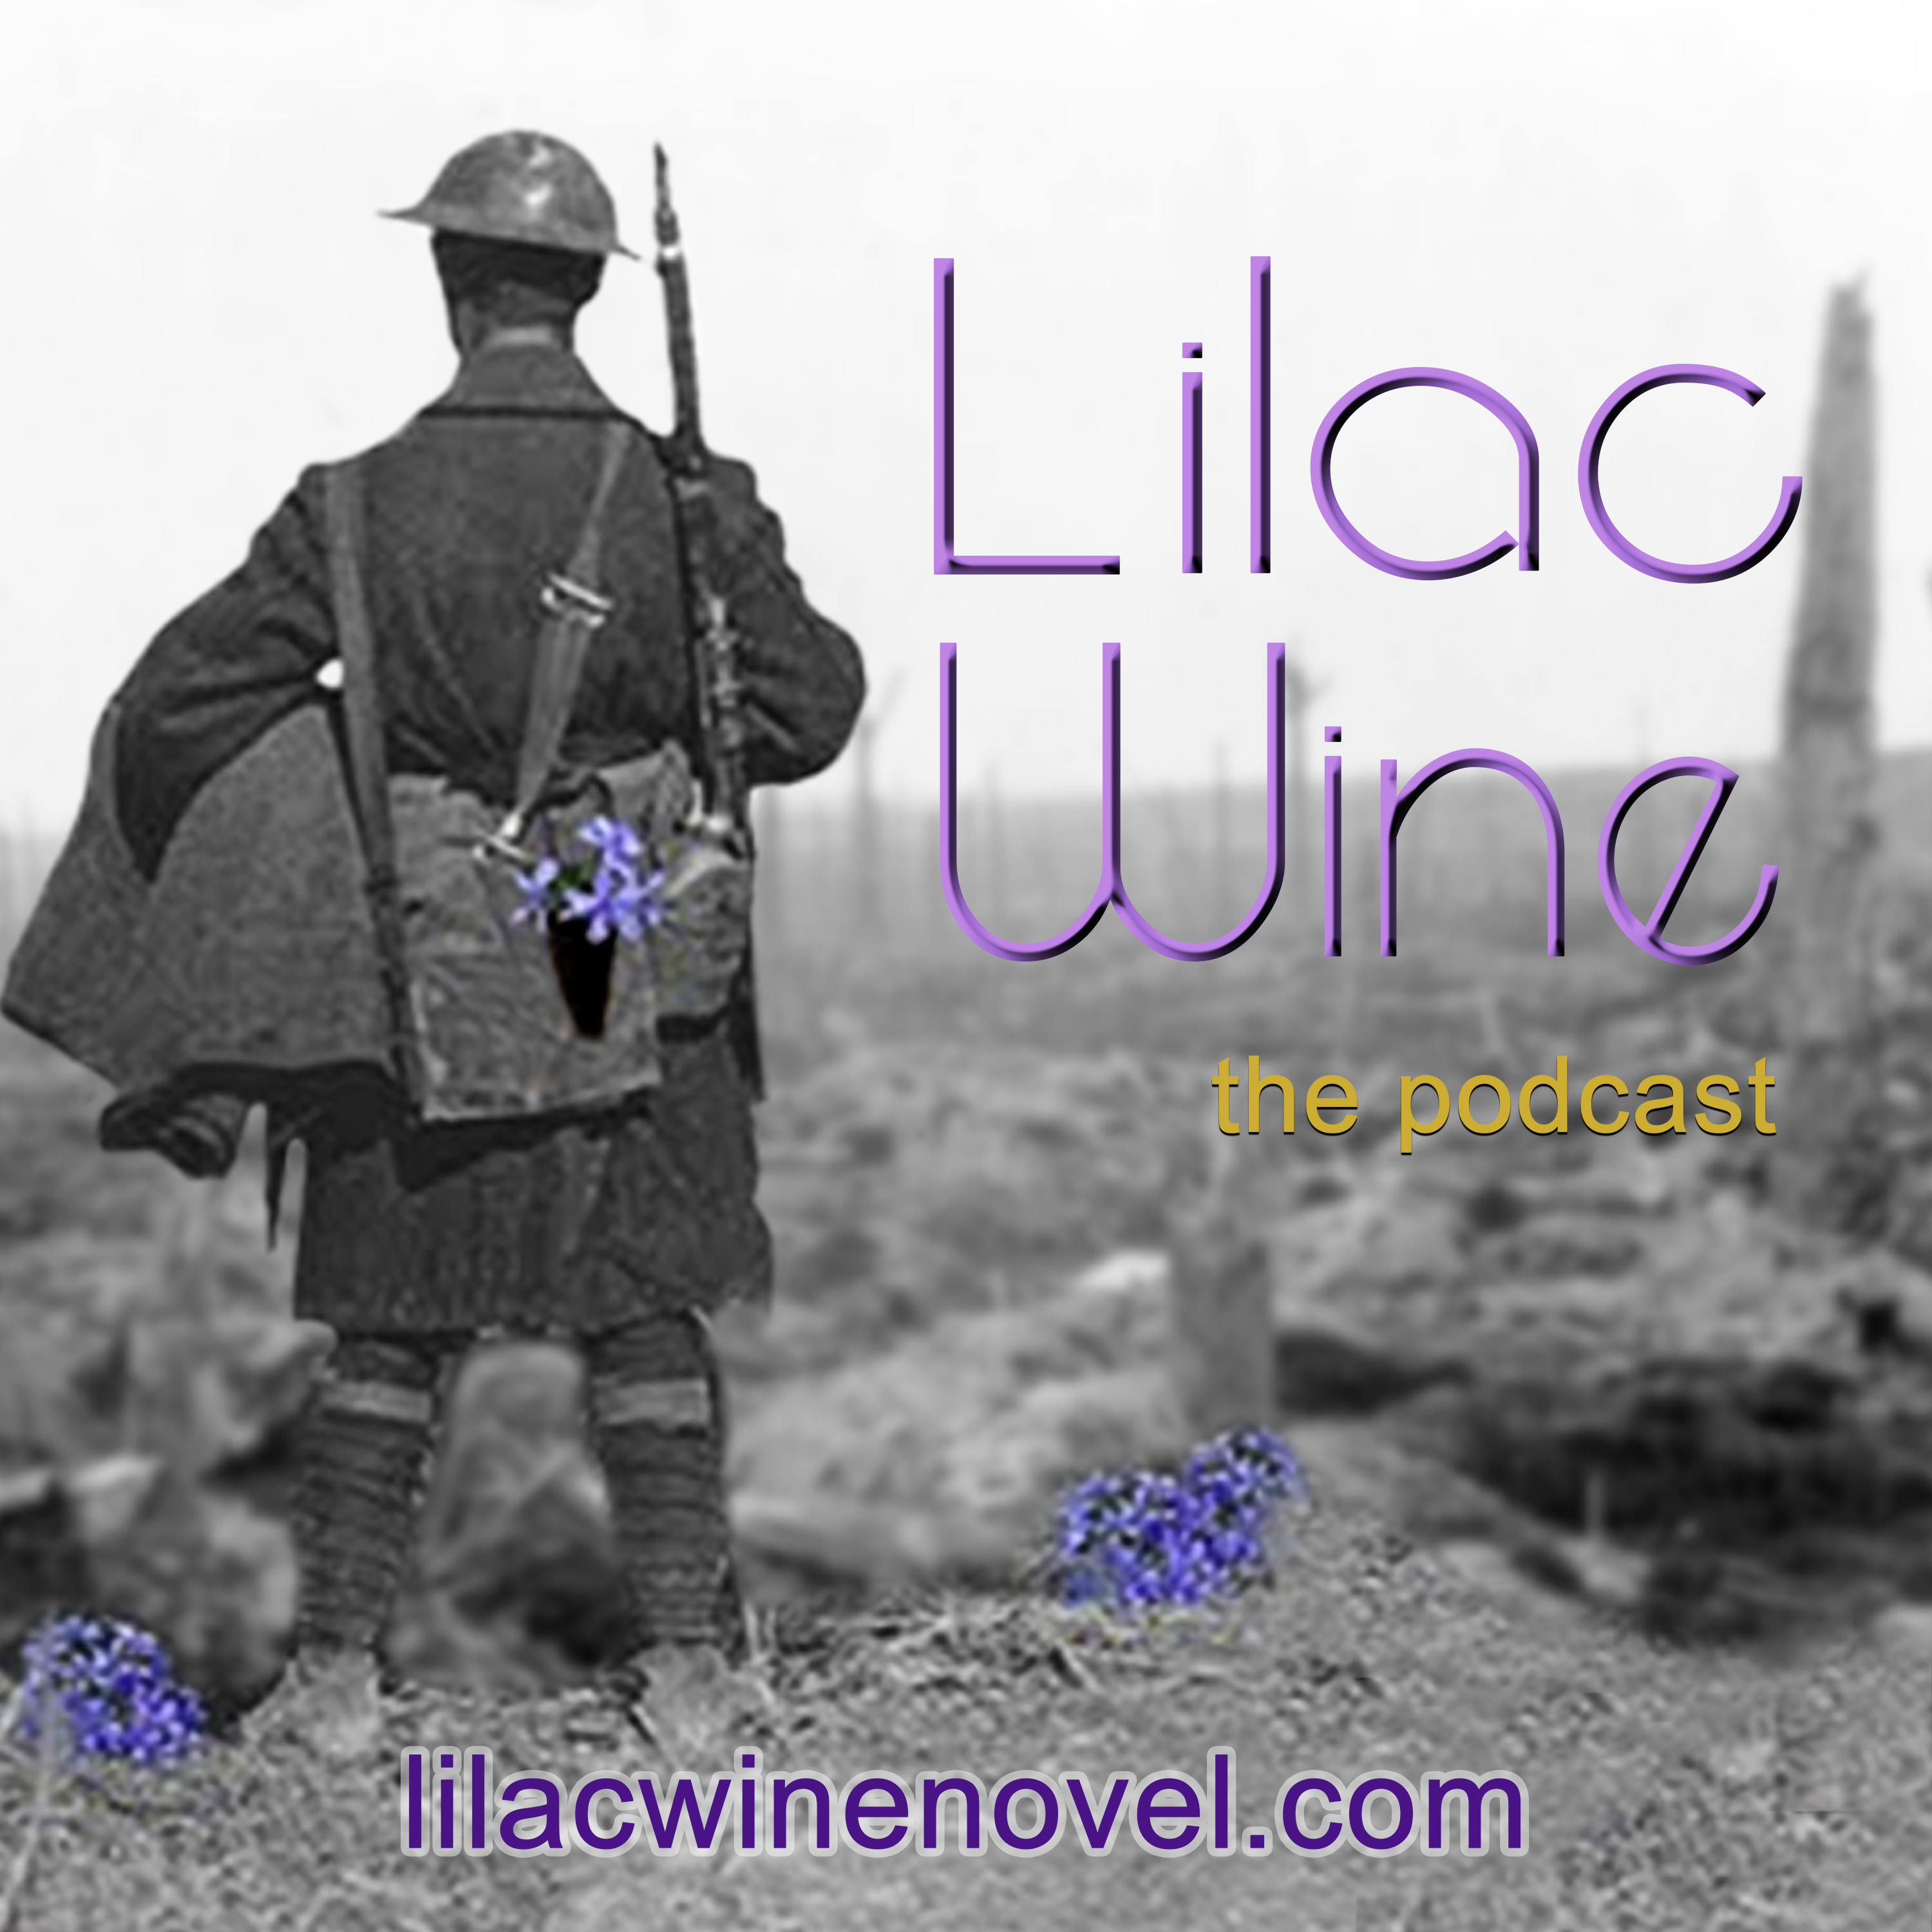 Lilac Wine - The Podcast show art